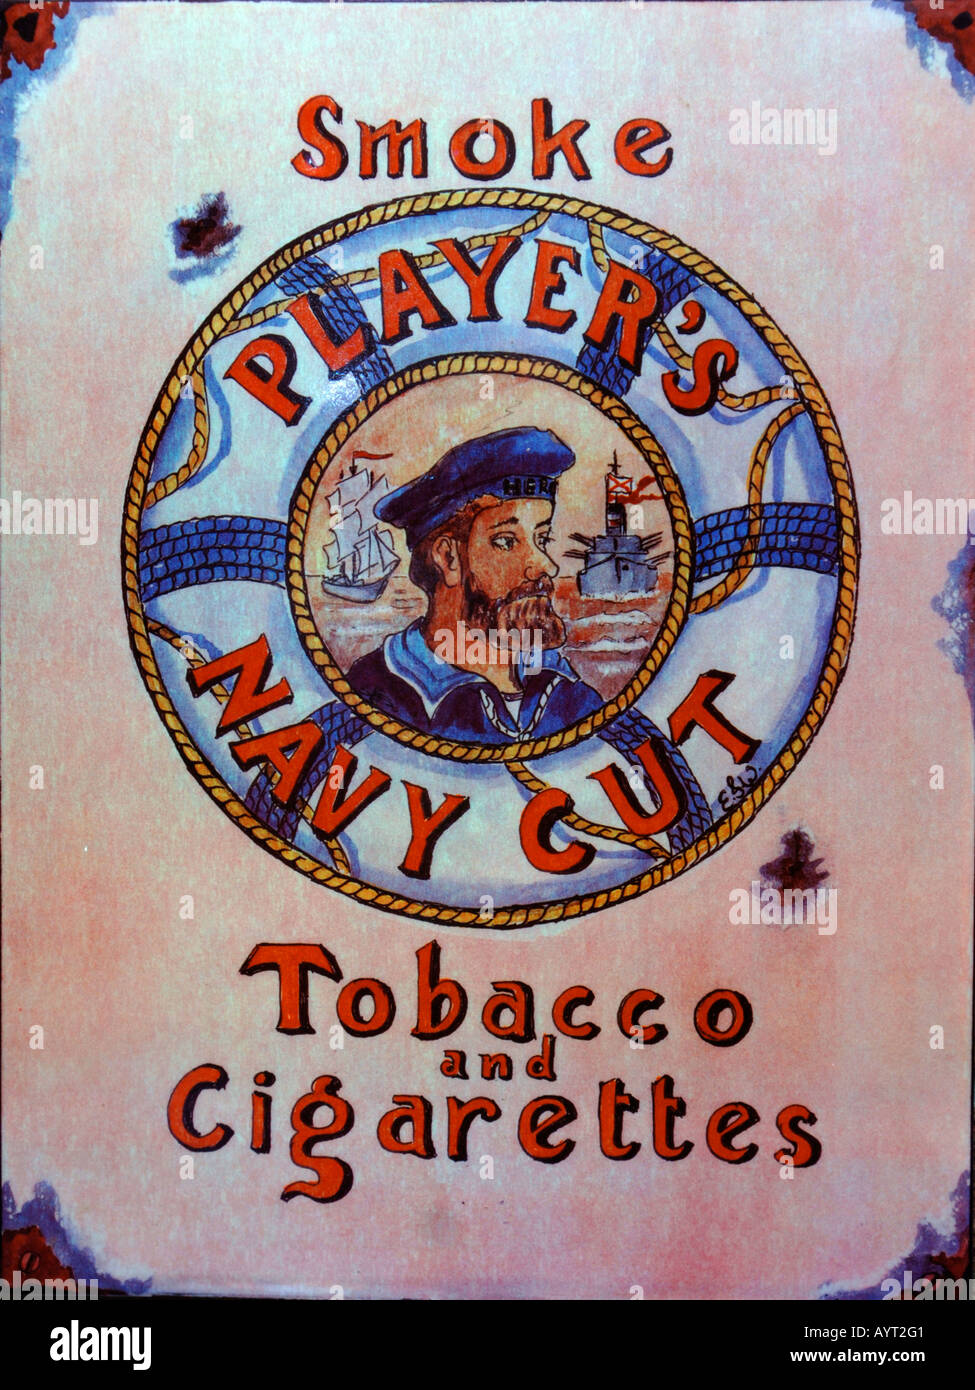 Player's Navy Cut cigarette advert - Stock Image